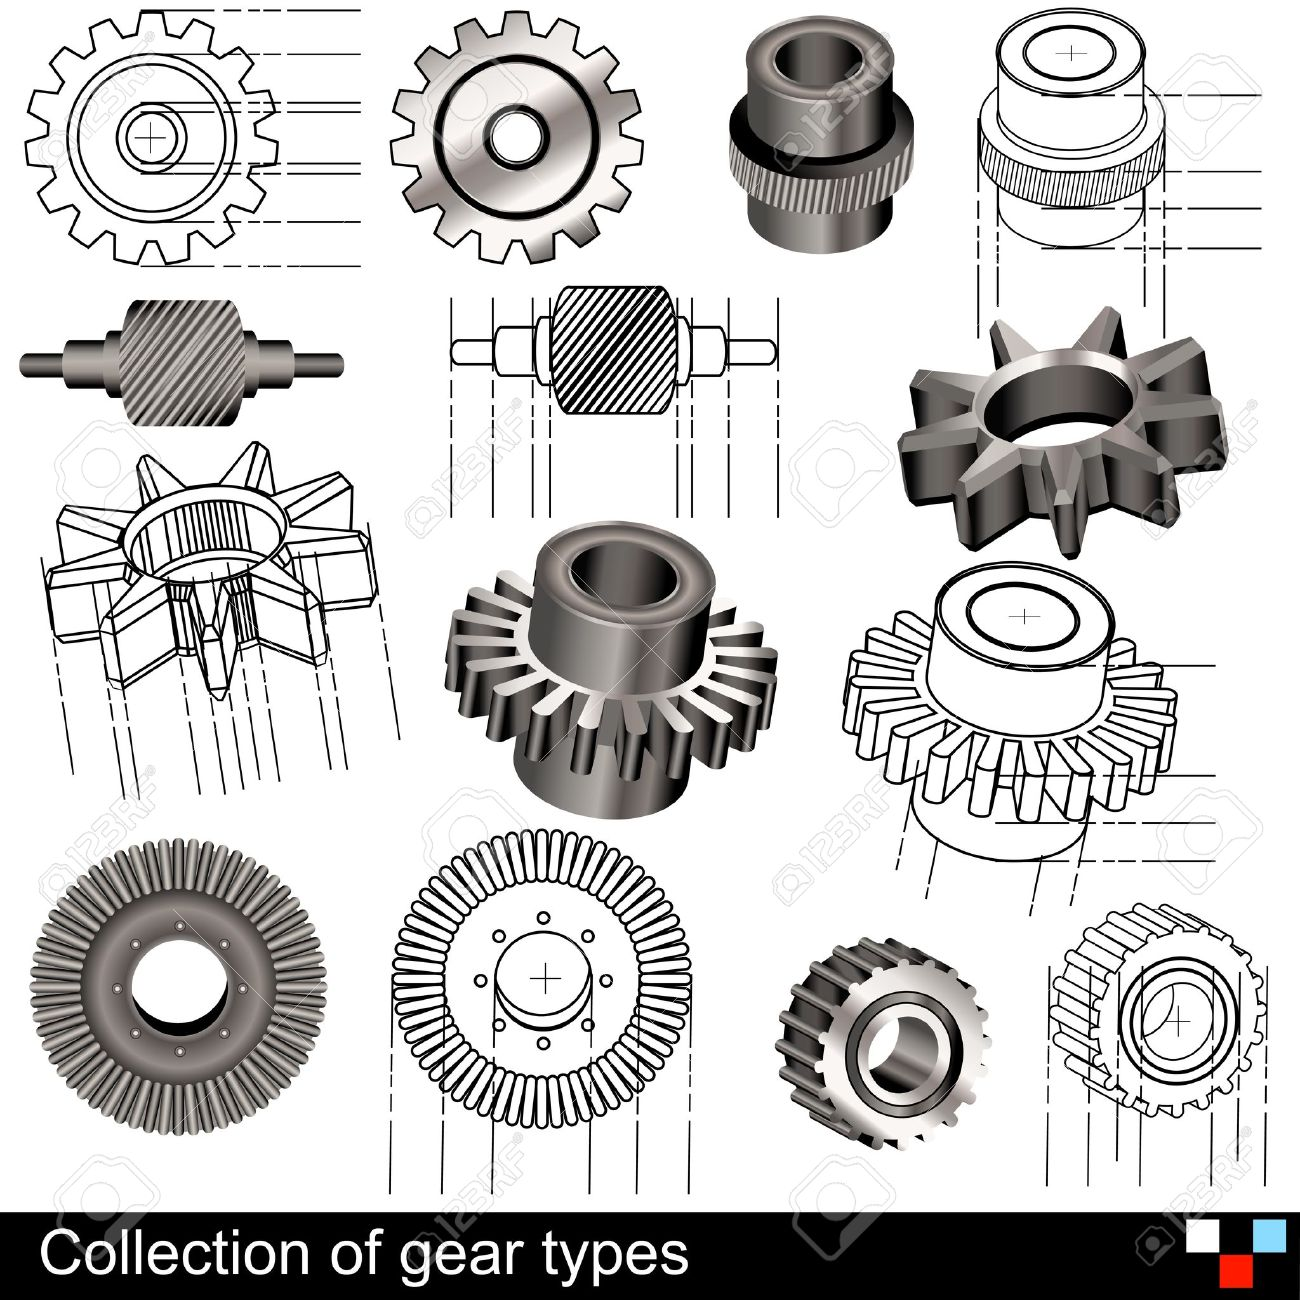 Collection of gear types - 15709512